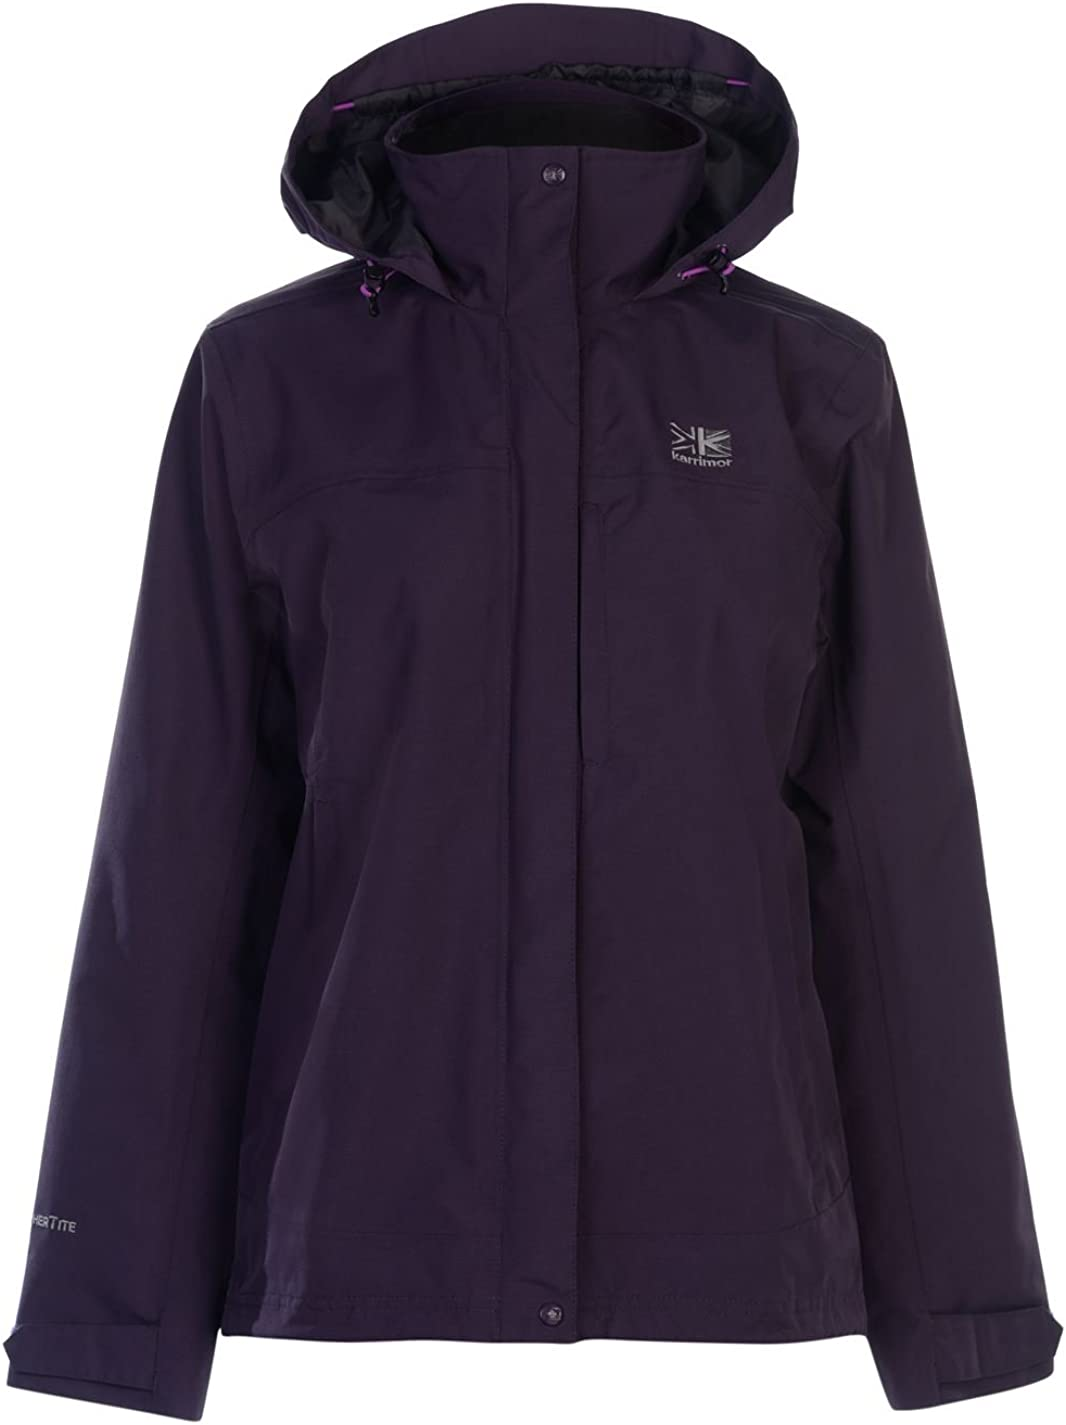 Womens Karrimor Urban Weathertite Jacket Waterproof New